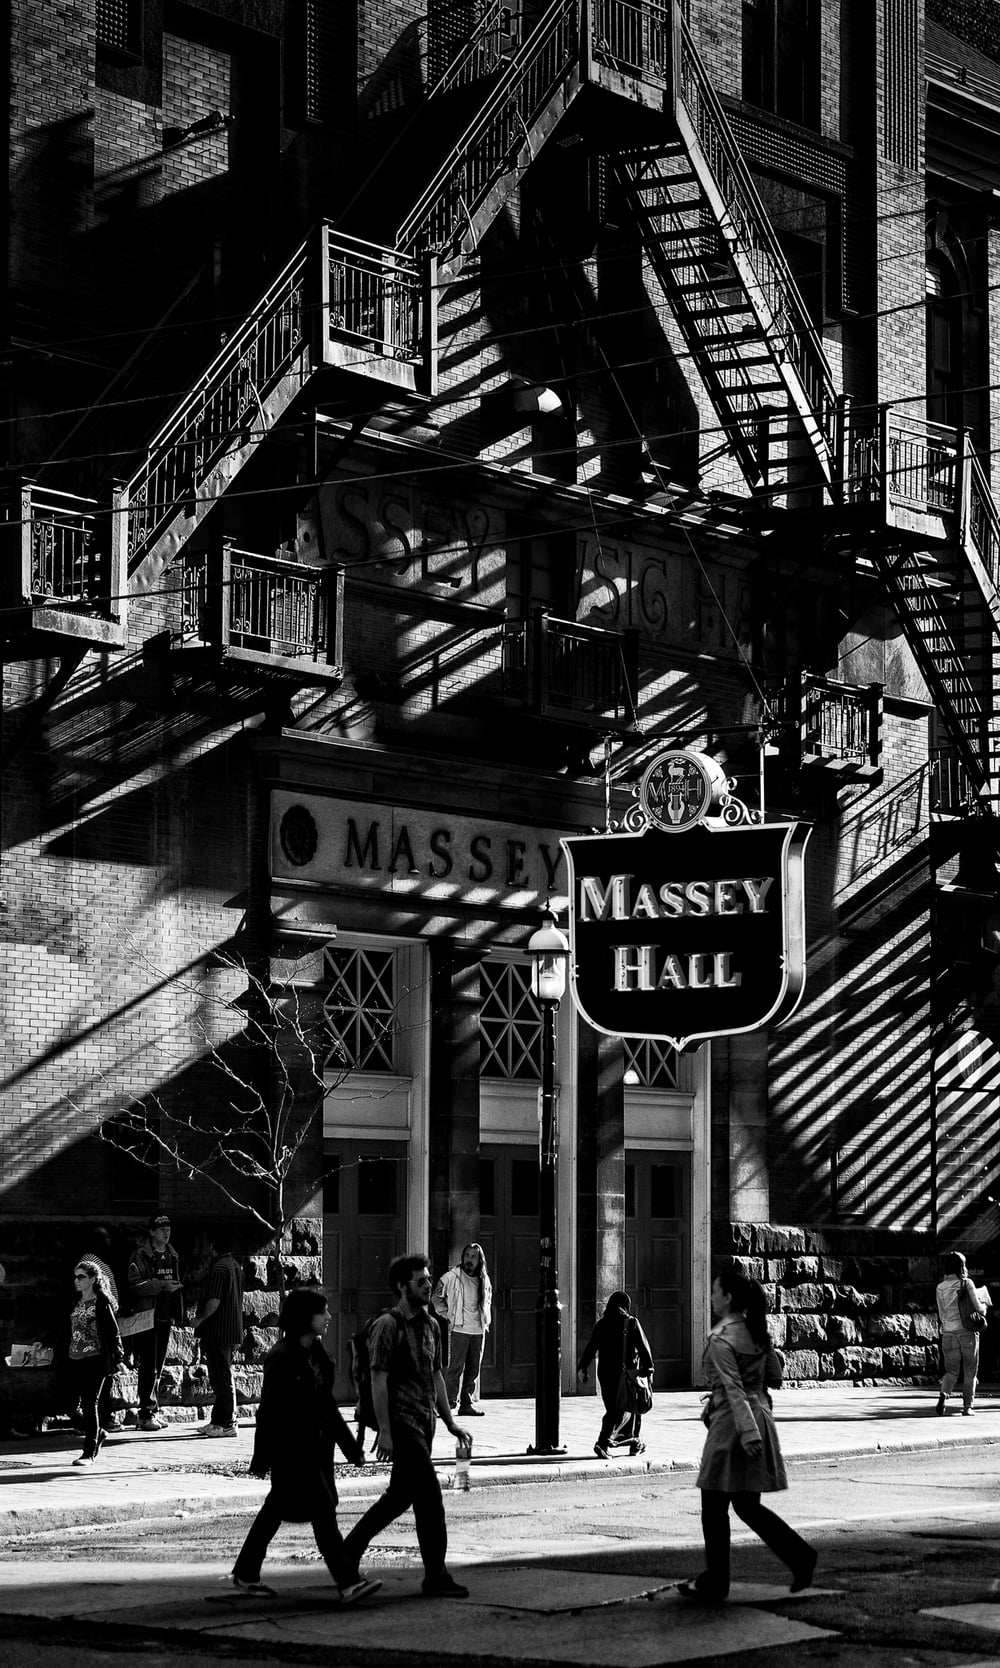 massey-hall_high-con_sunlight_shadow_bw_01.jpg